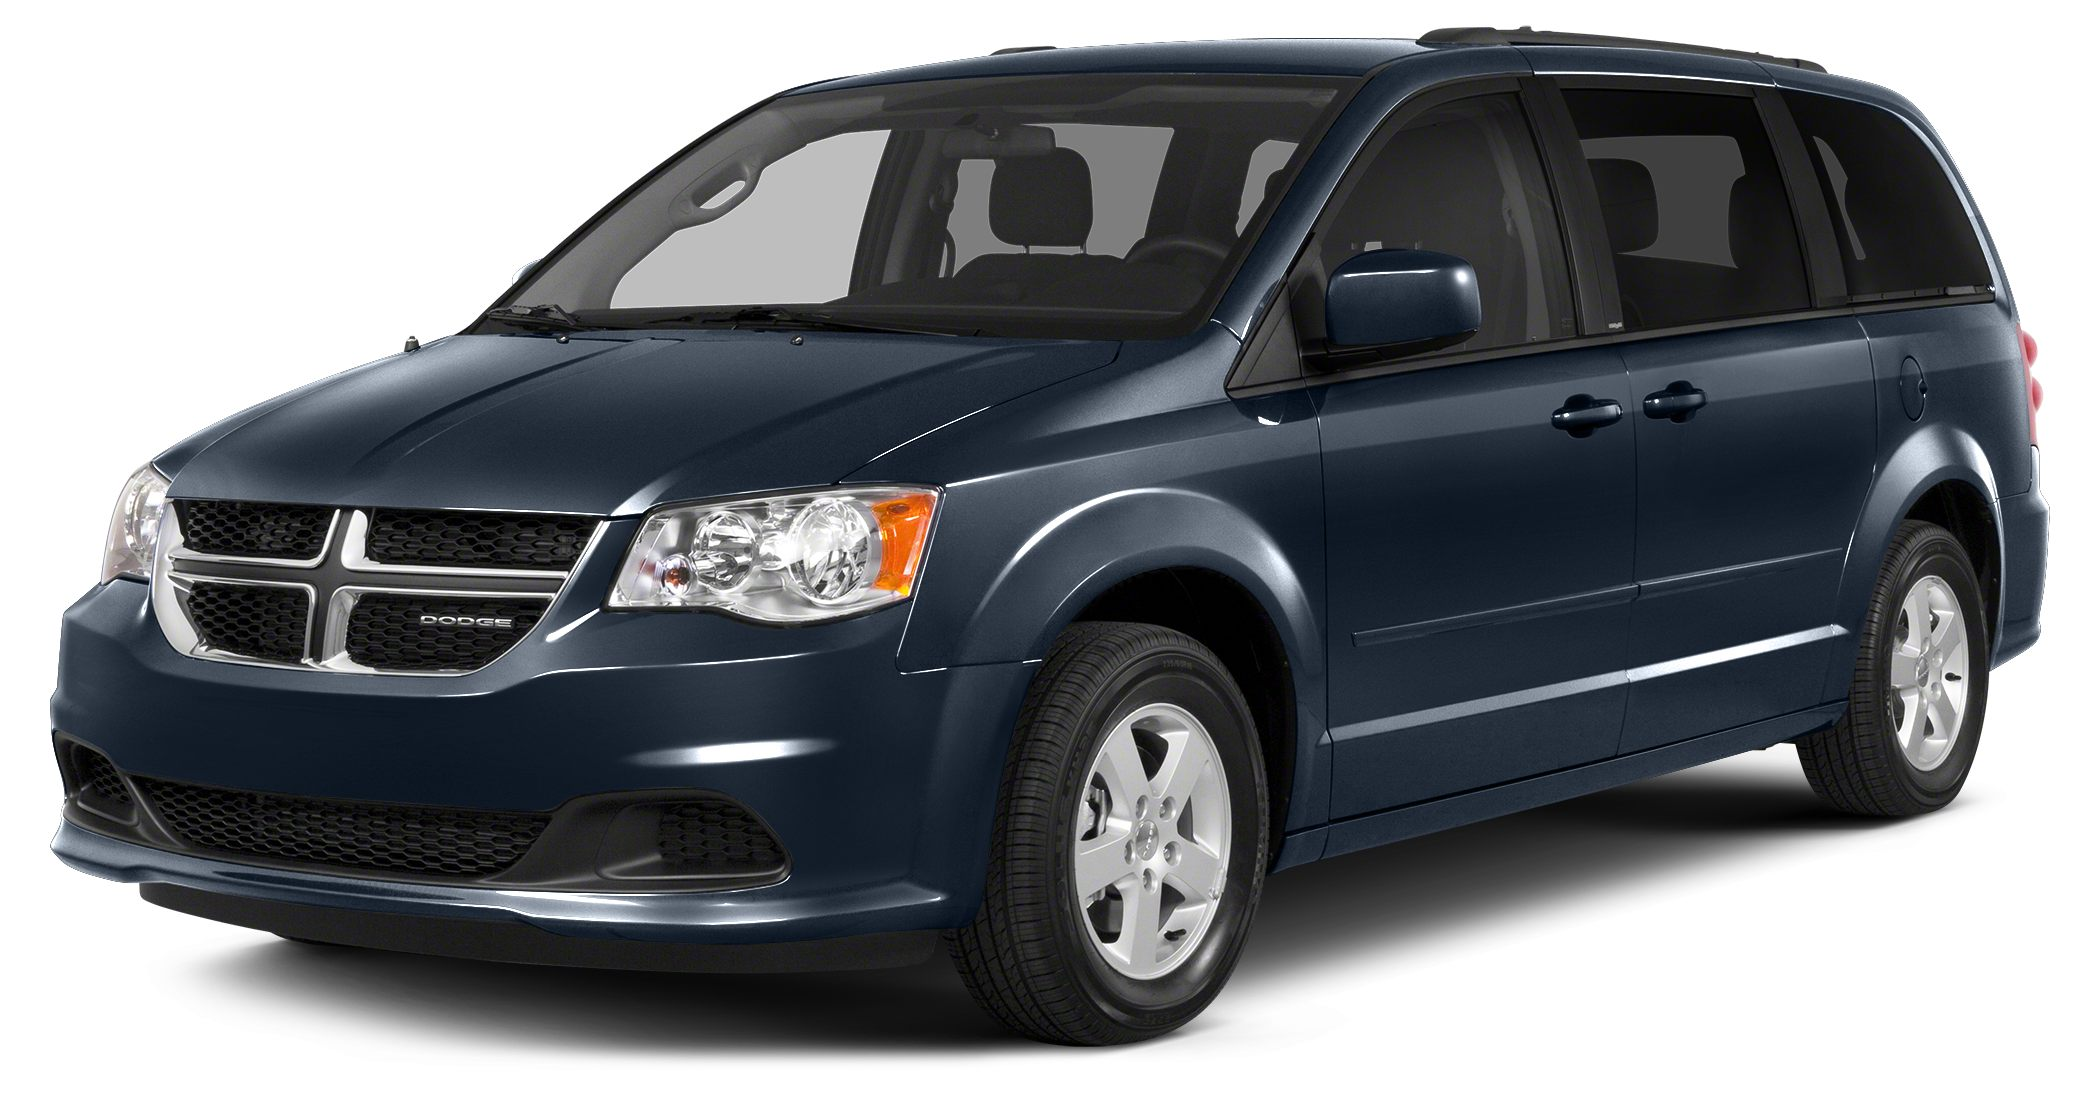 2014 Dodge Grand Caravan SXT Miles 45645Color Blue Stock U2145 VIN 2C4RDGCG2ER430025